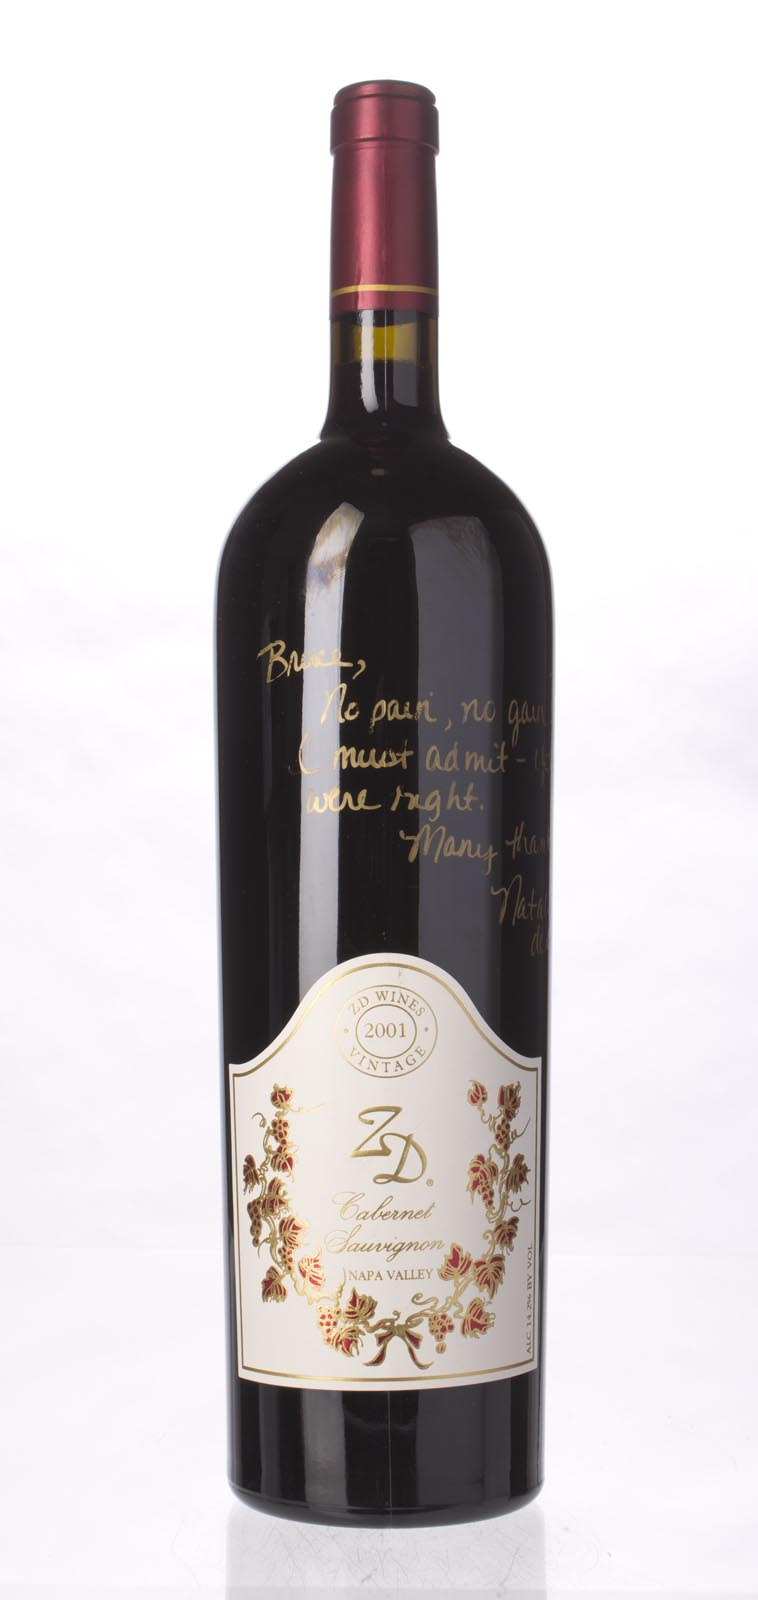 ZD Wines Cabernet Sauvignon Napa Valley 2001, 1.5L () from The BPW - Merchants of rare and fine wines.